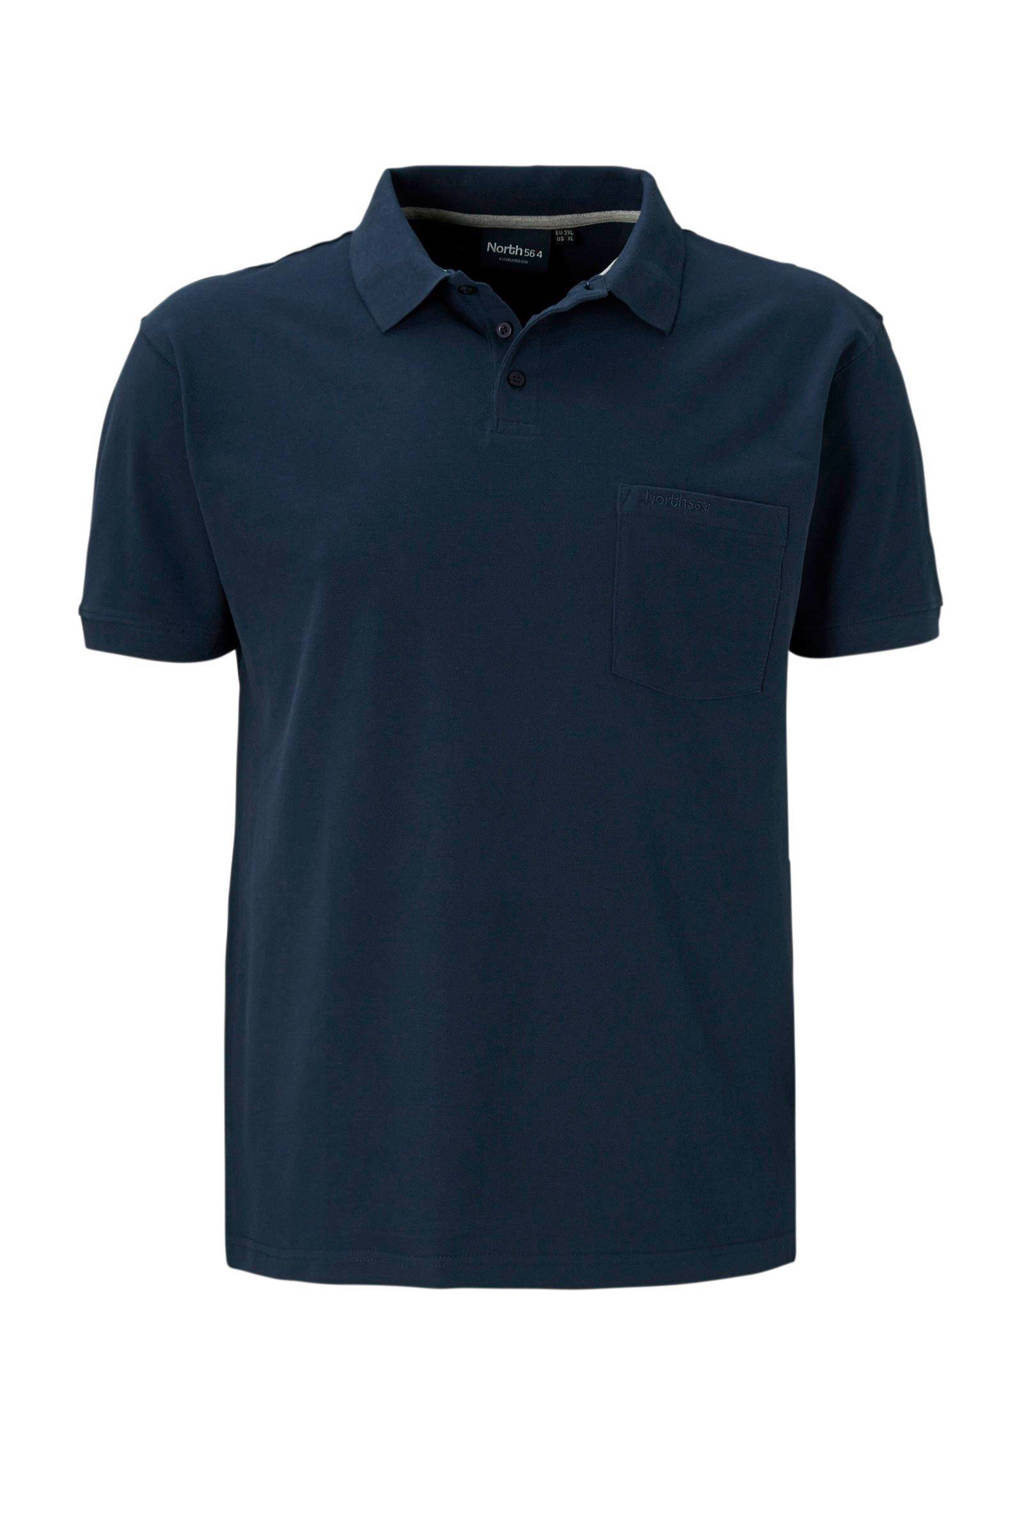 North 56°4 +size polo, Donkerblauw